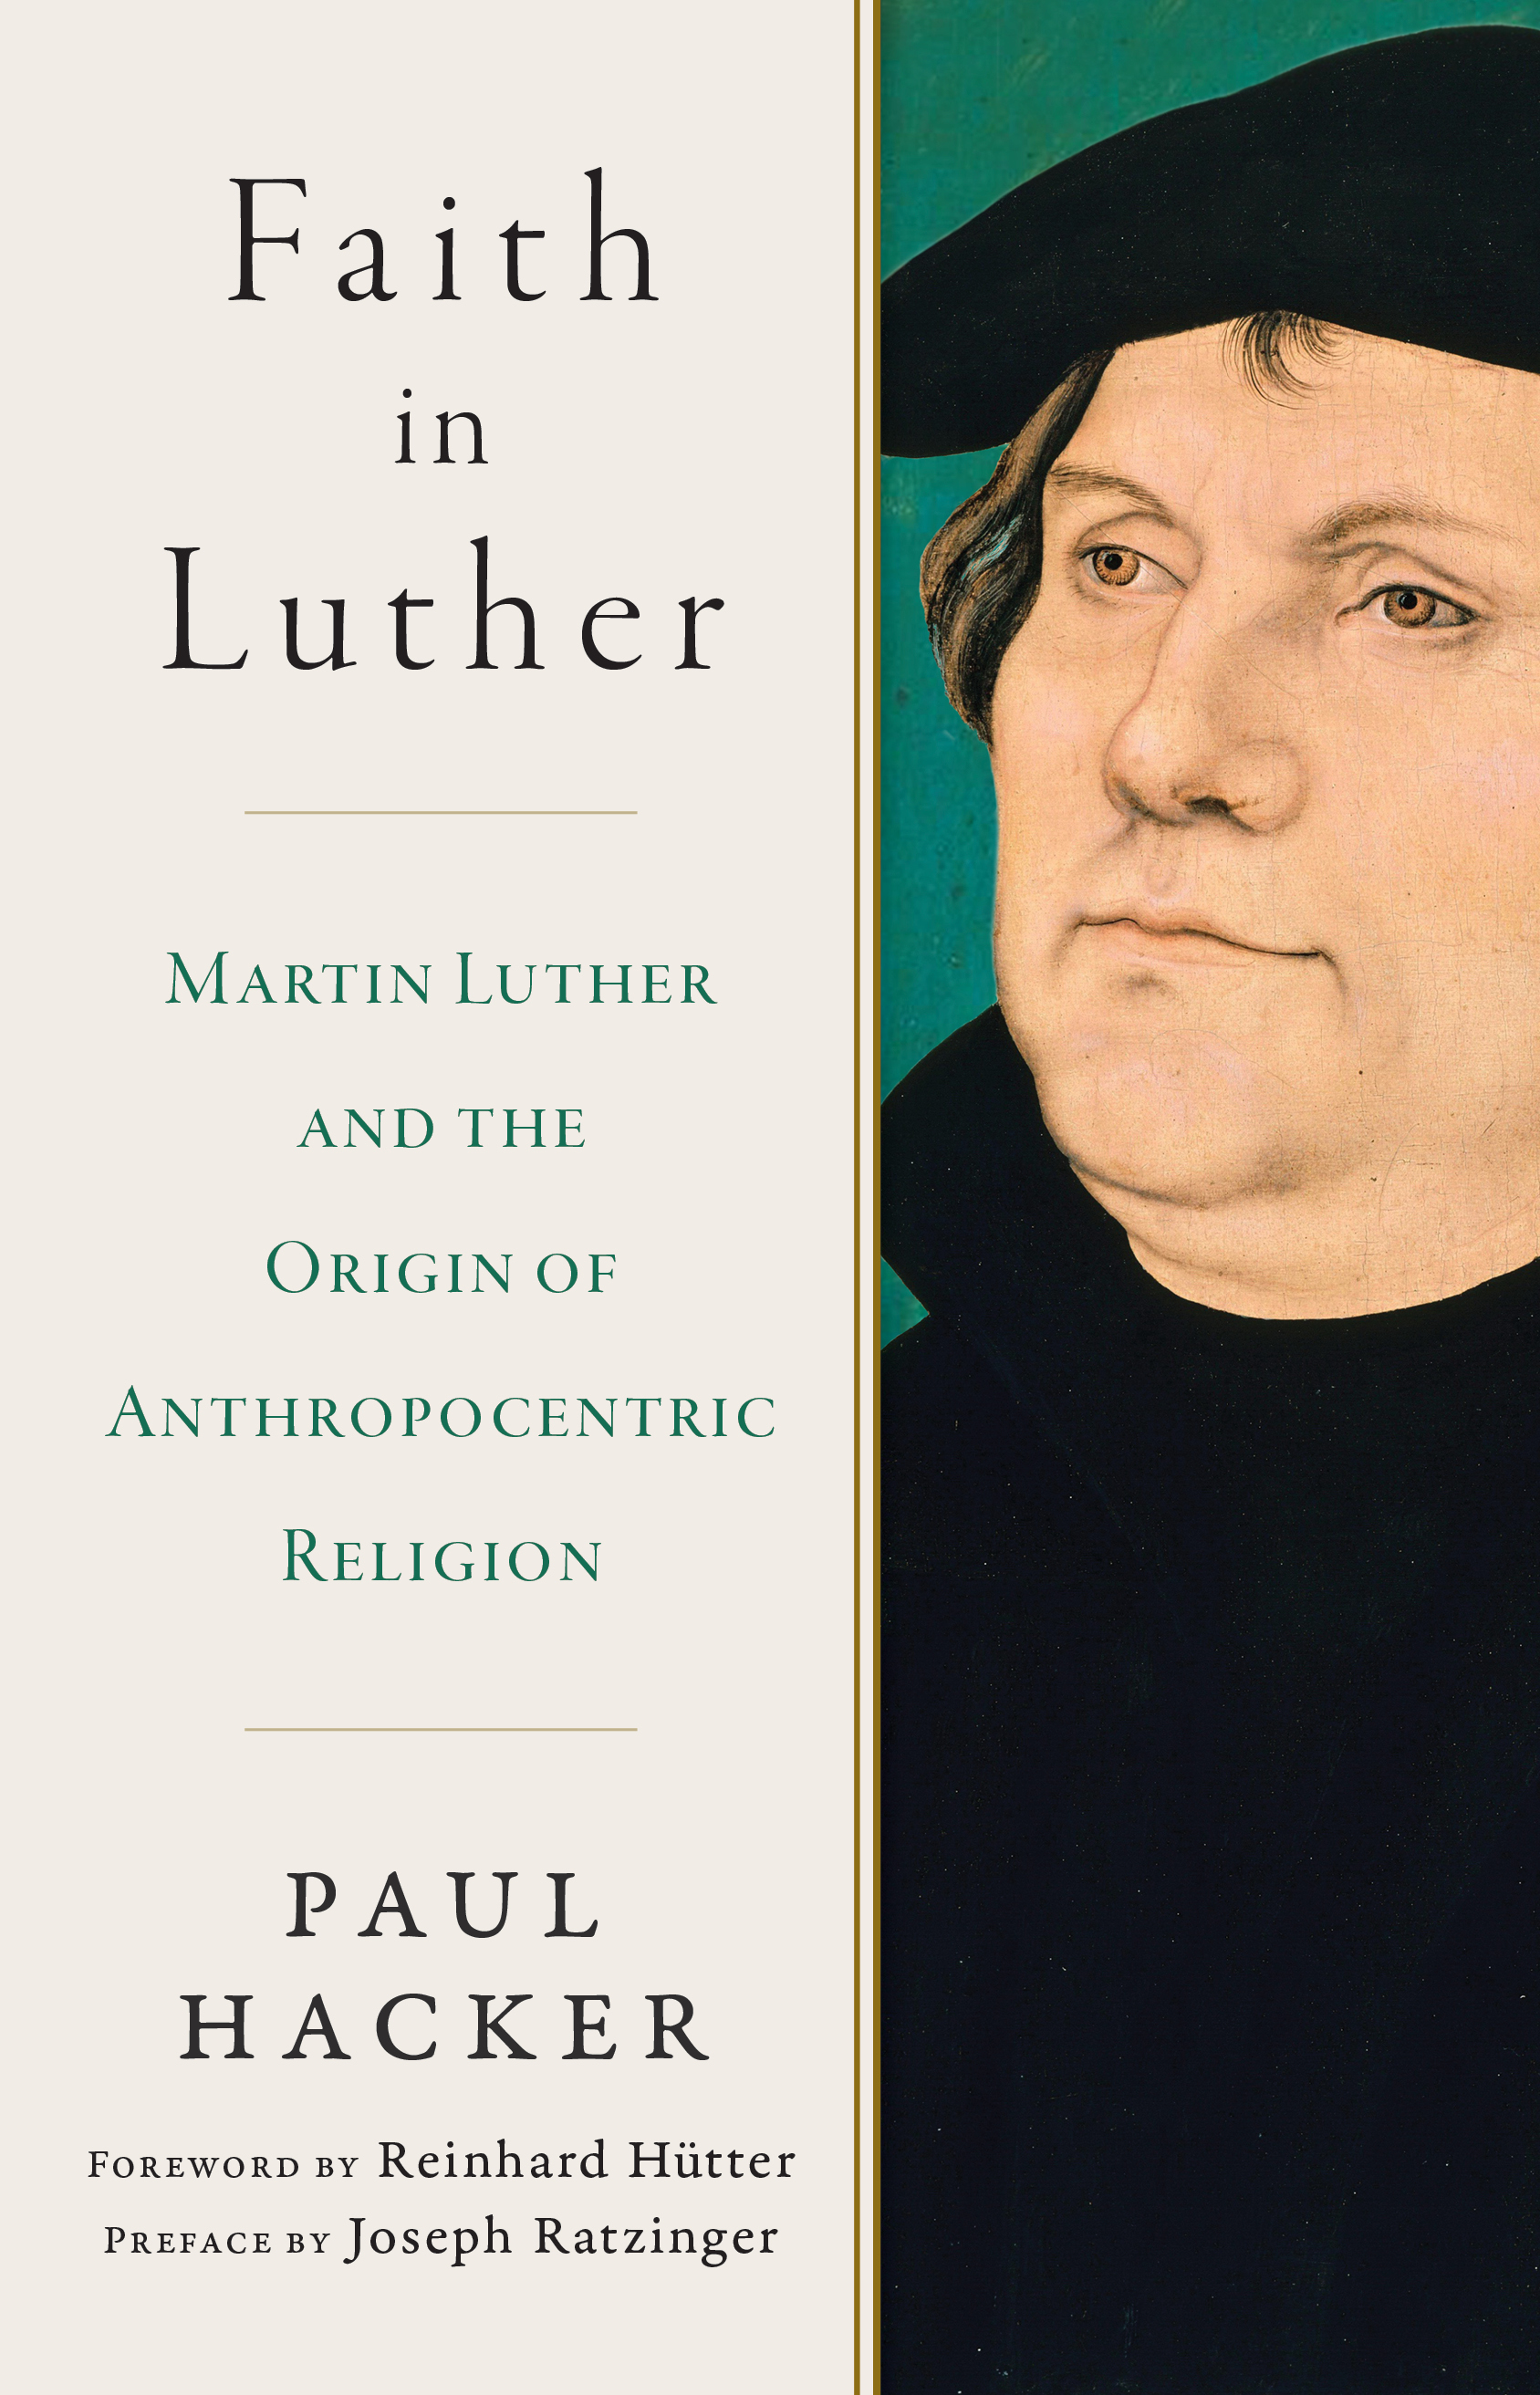 Faith in Luther: Martin Luther and the Origin of Anthropocentric Religion   St. Paul Center